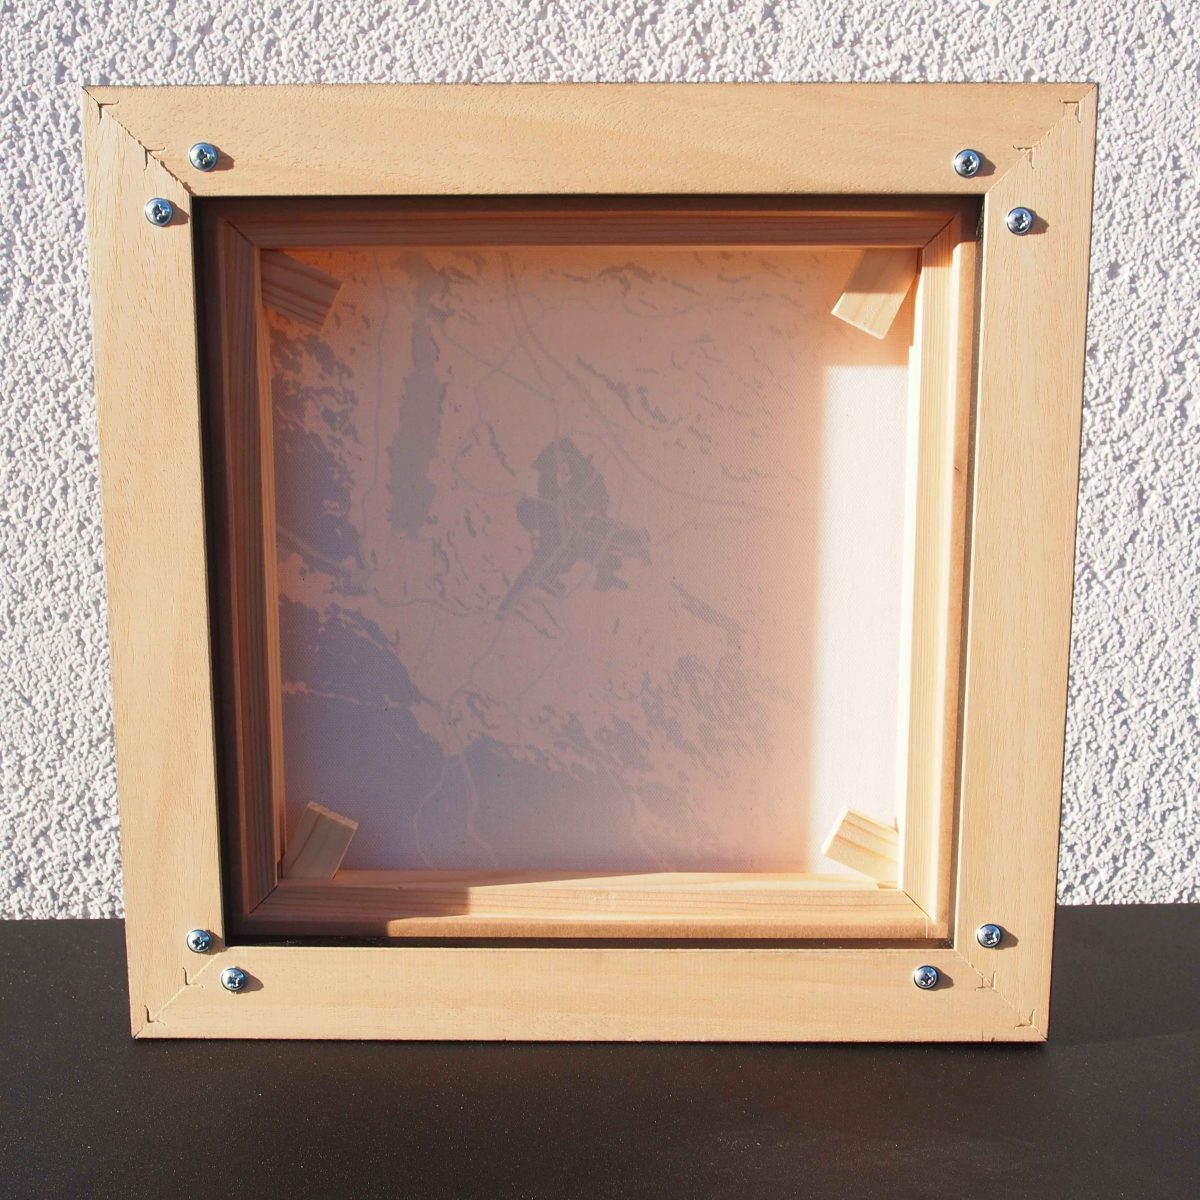 Framed canvas mount